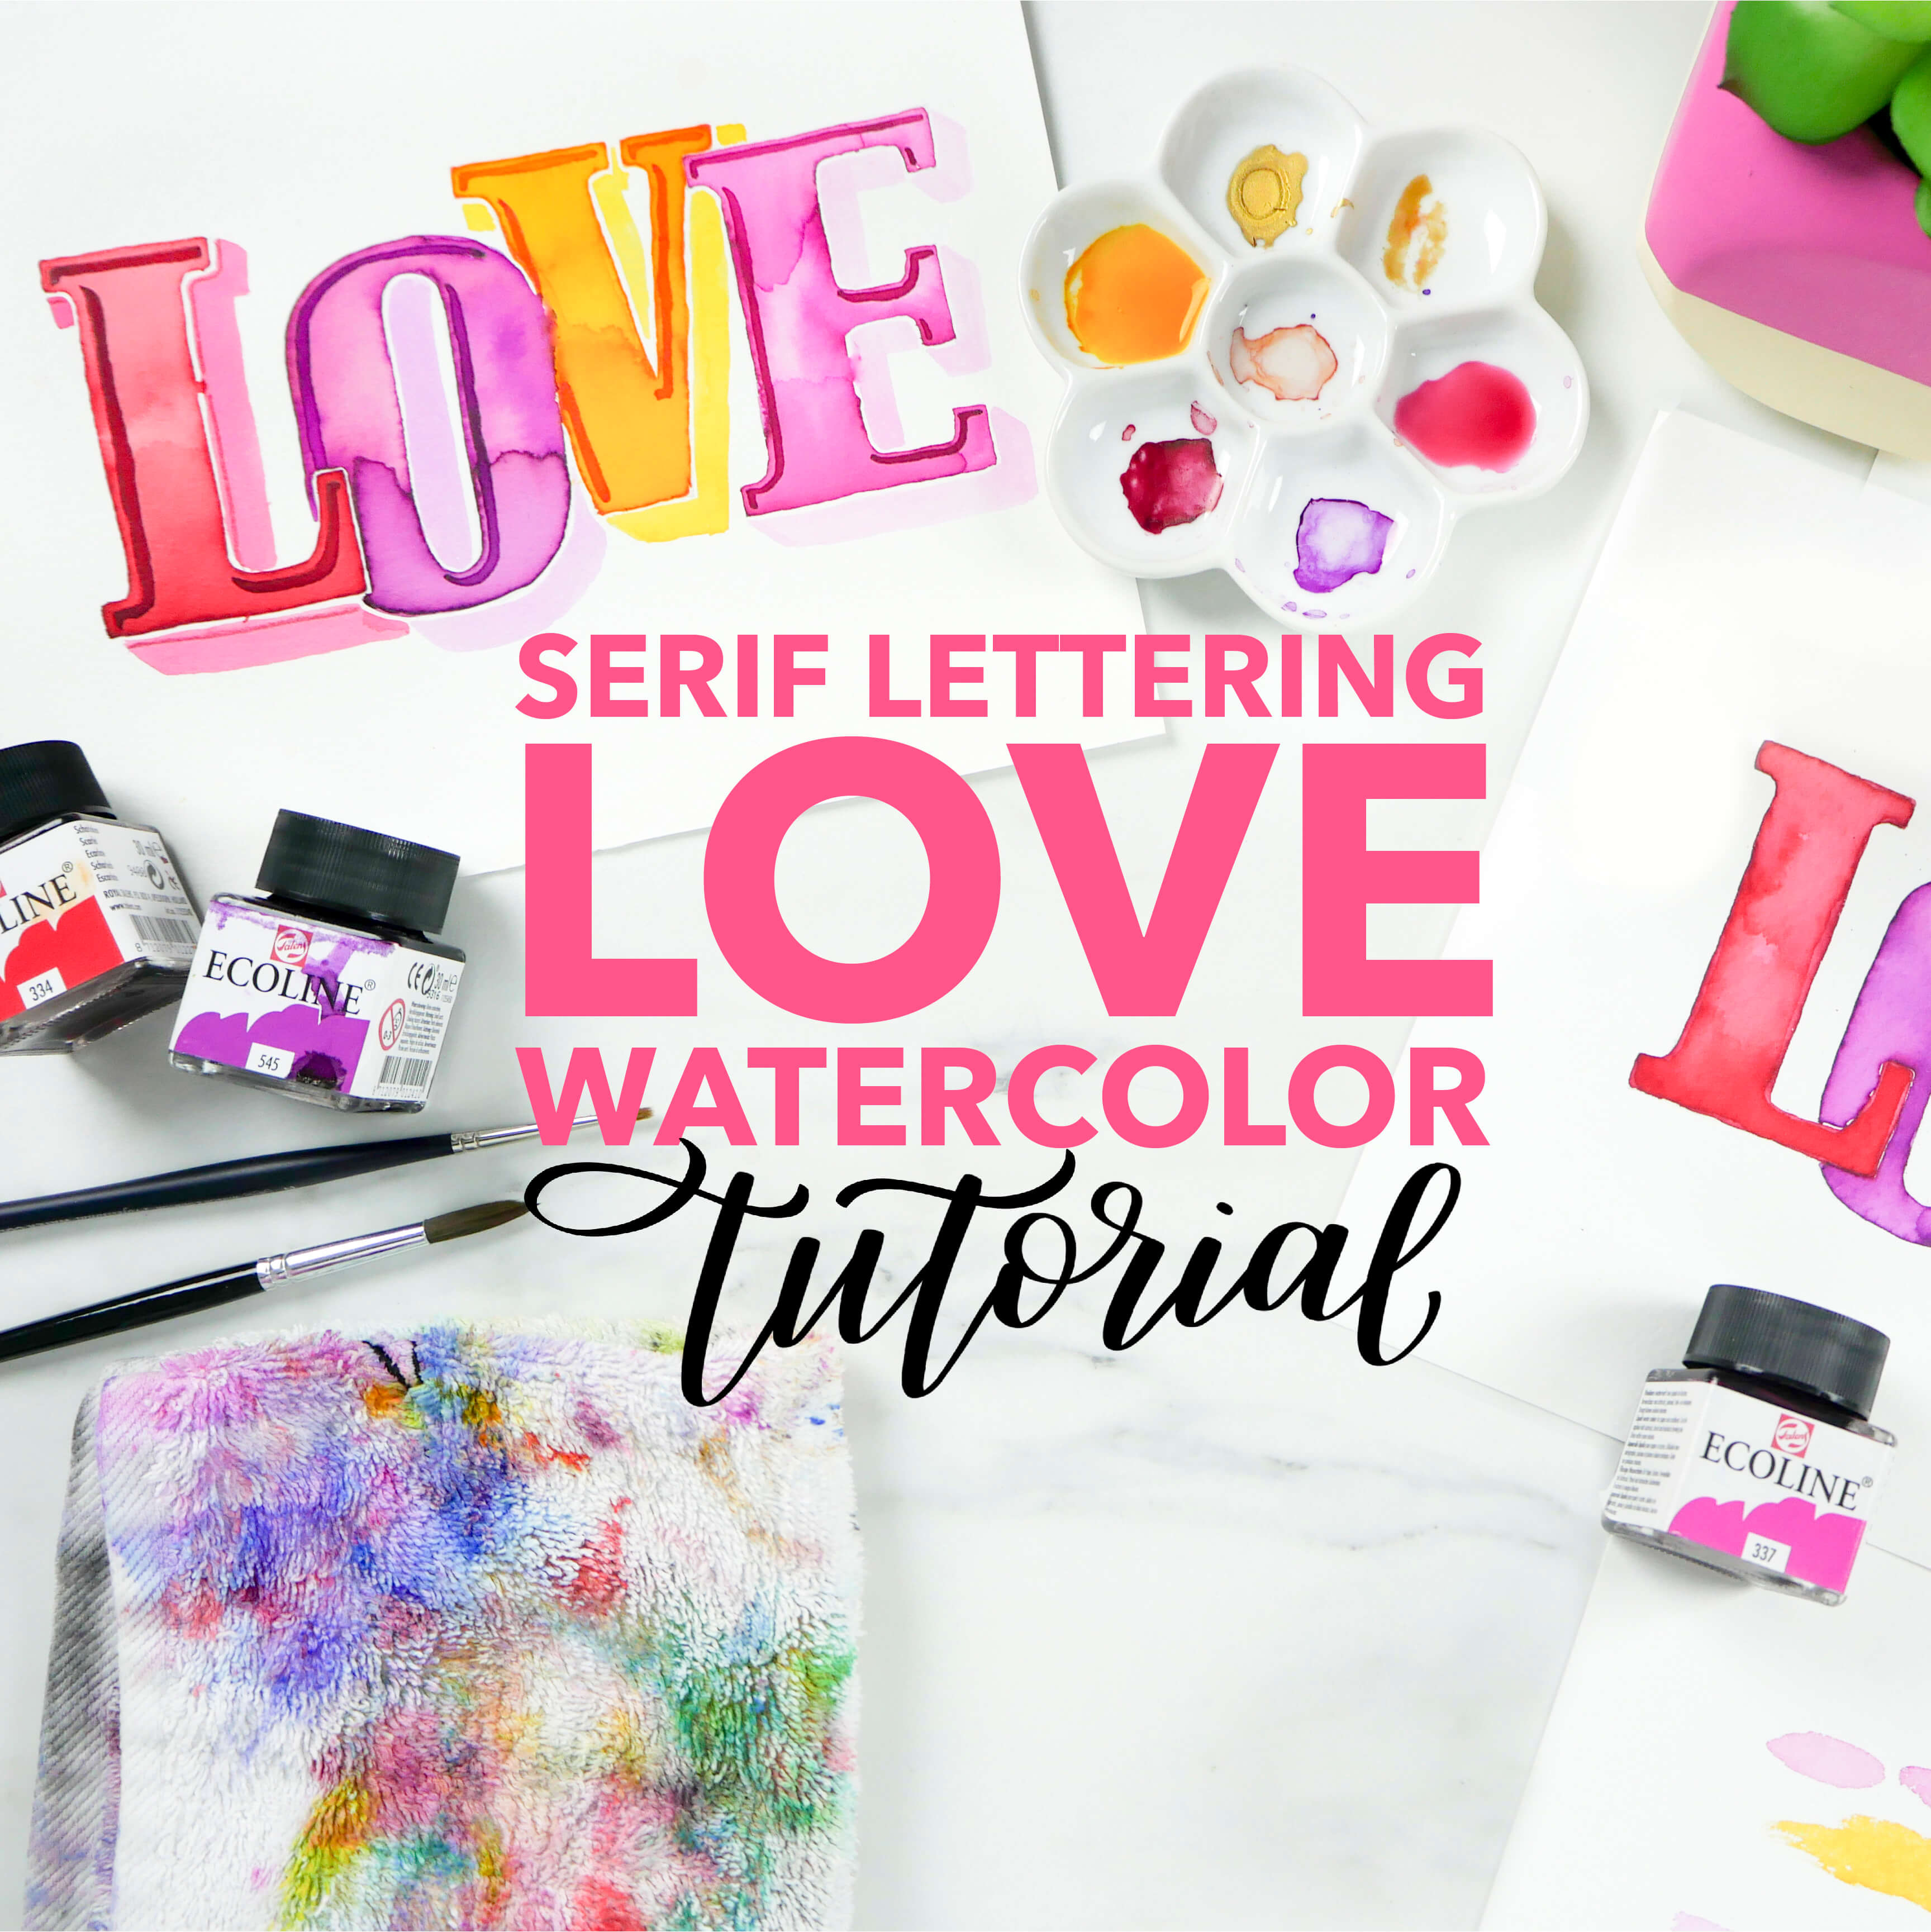 DIY Valentines Day Serif Lettering LOVE Watercolor Tutorial With Free Traceable Design